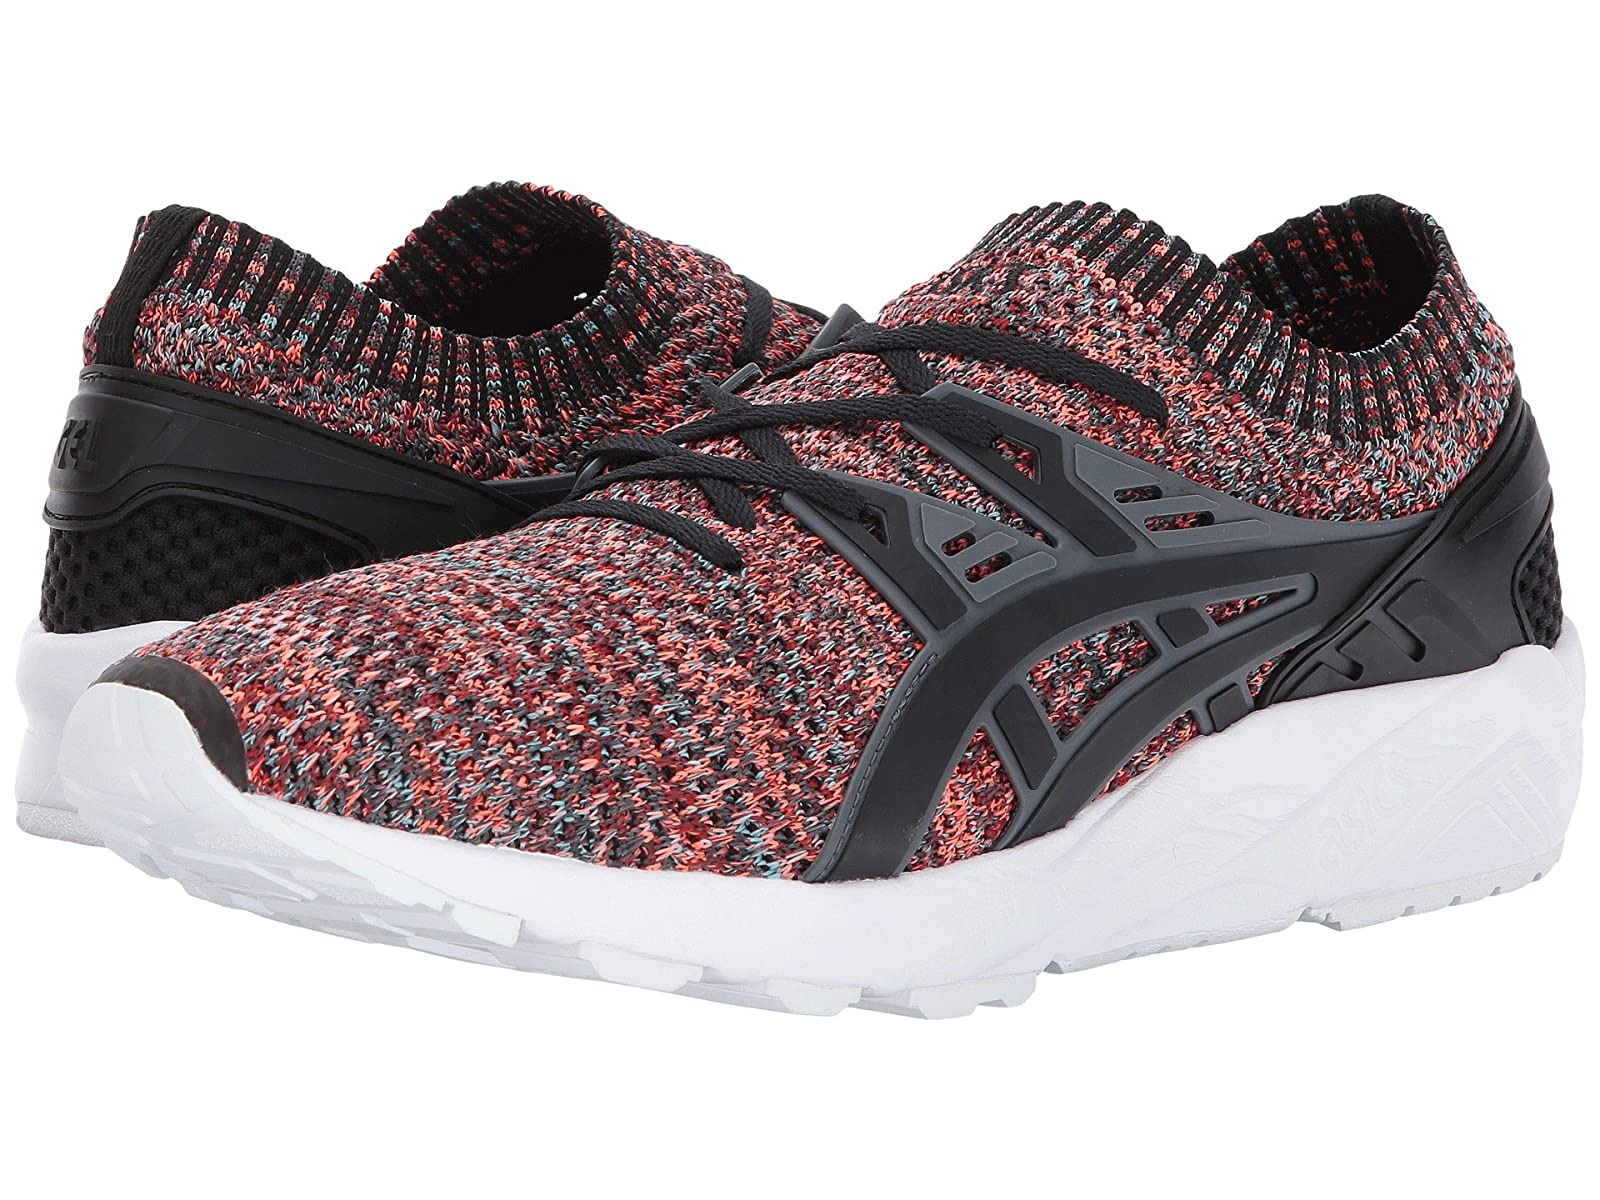 ASICS Tiger Gel-Kayano Trainer KnitCheap and distinctive eye-catching shoes